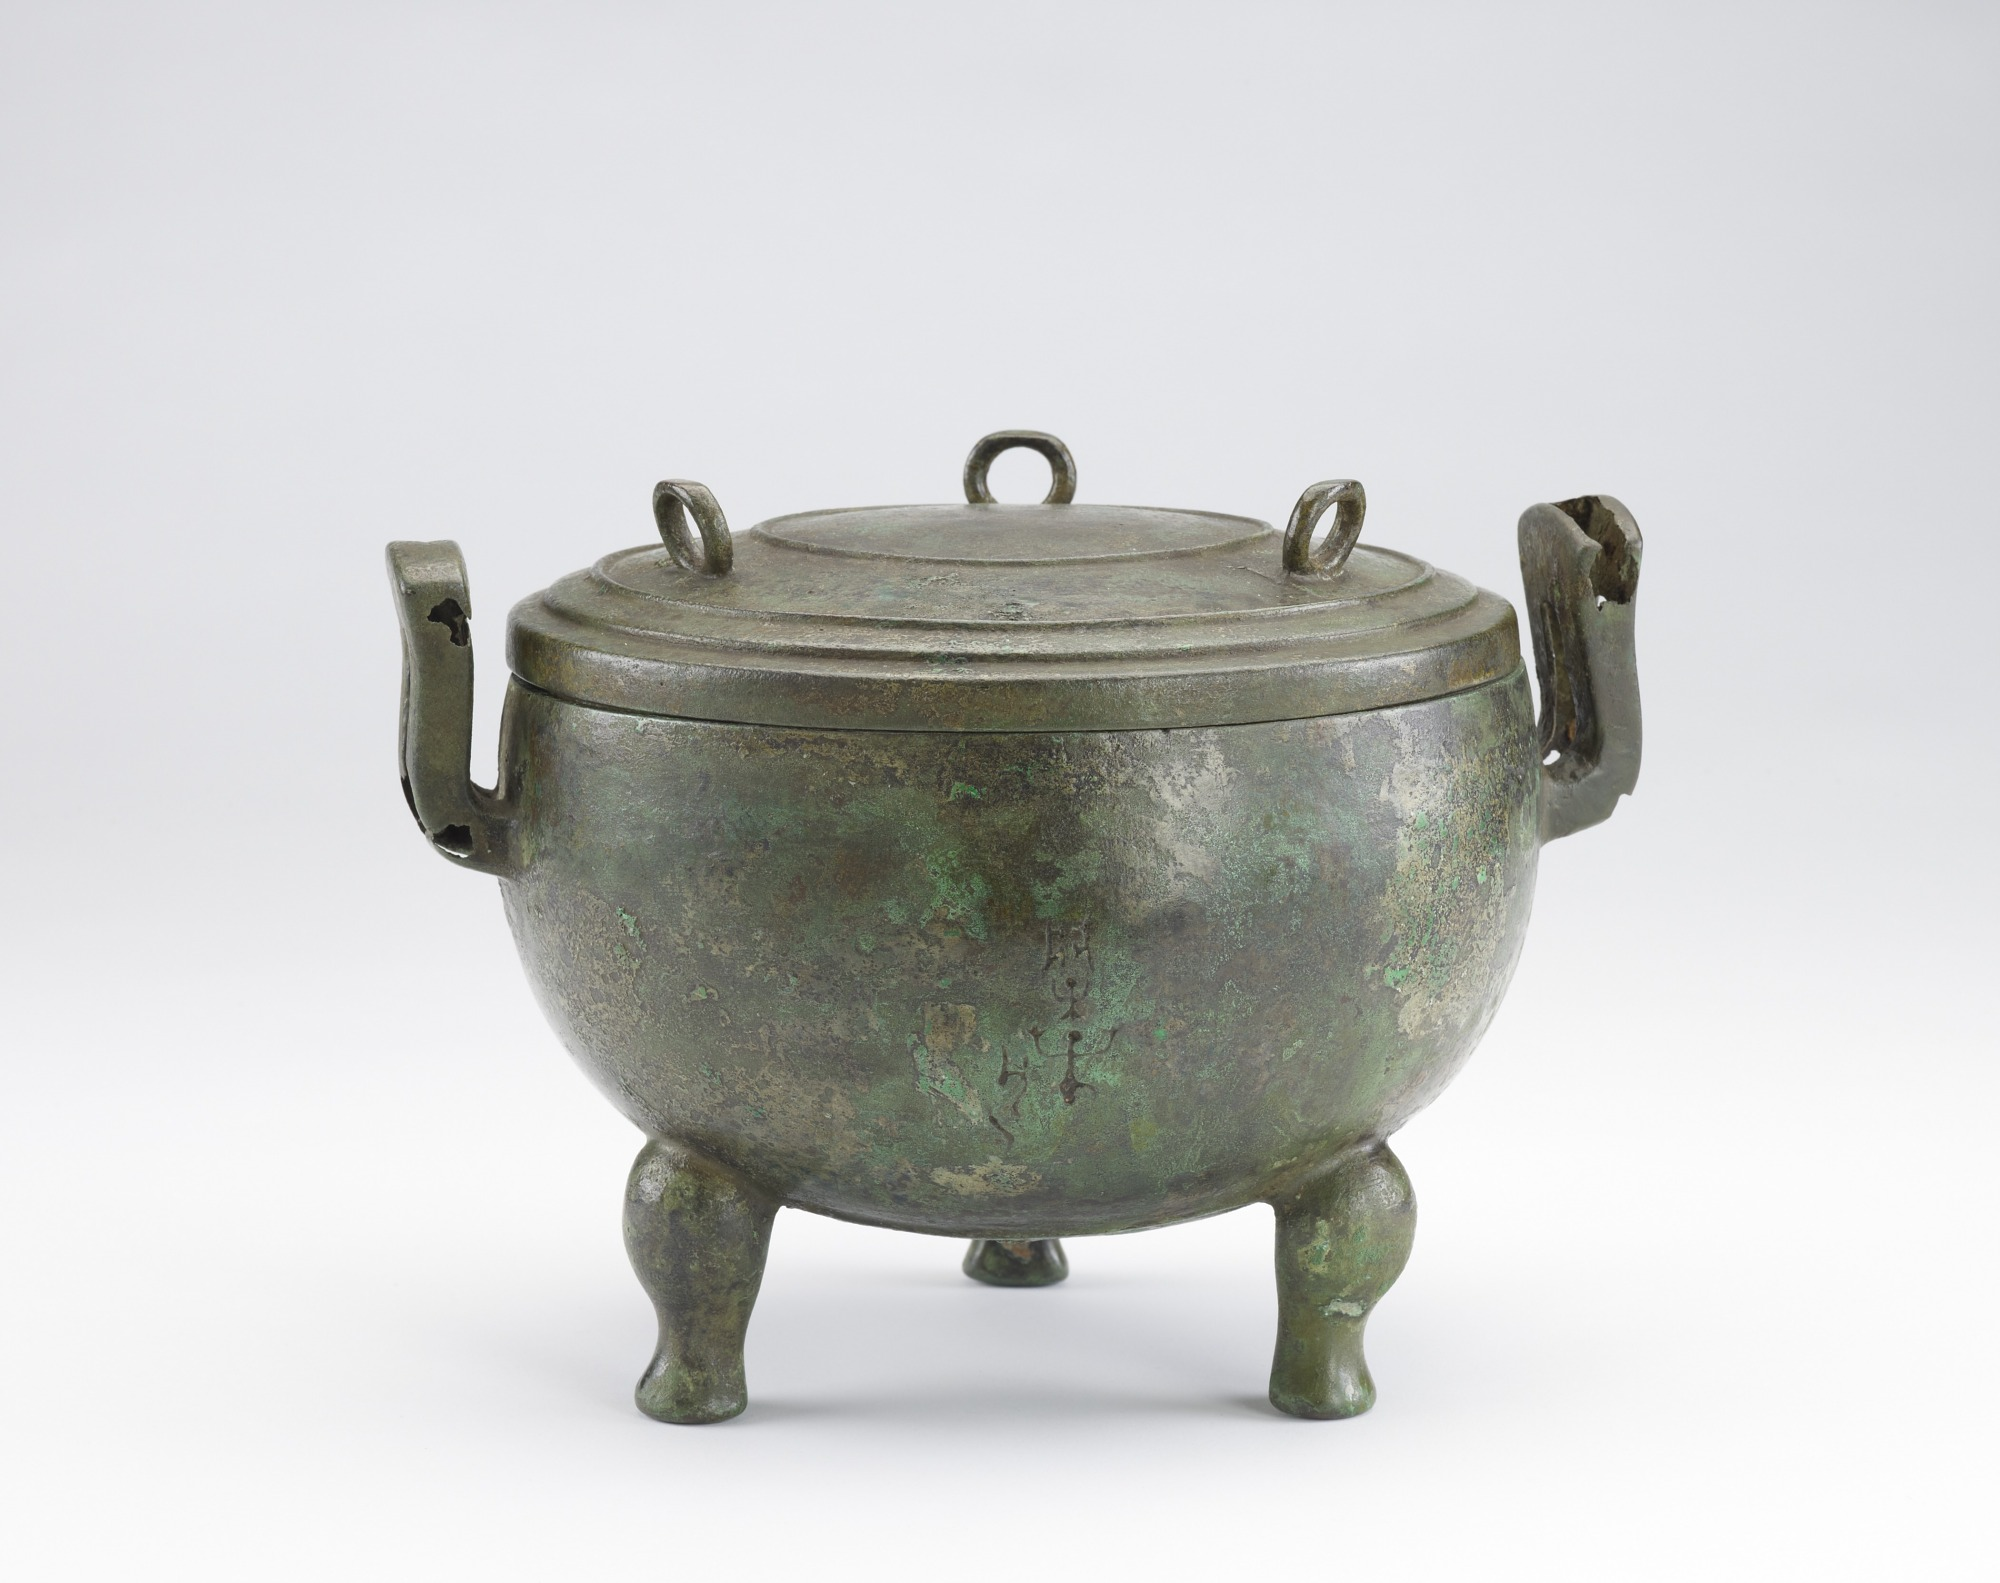 Ceremonial vessel (ting) with a cover